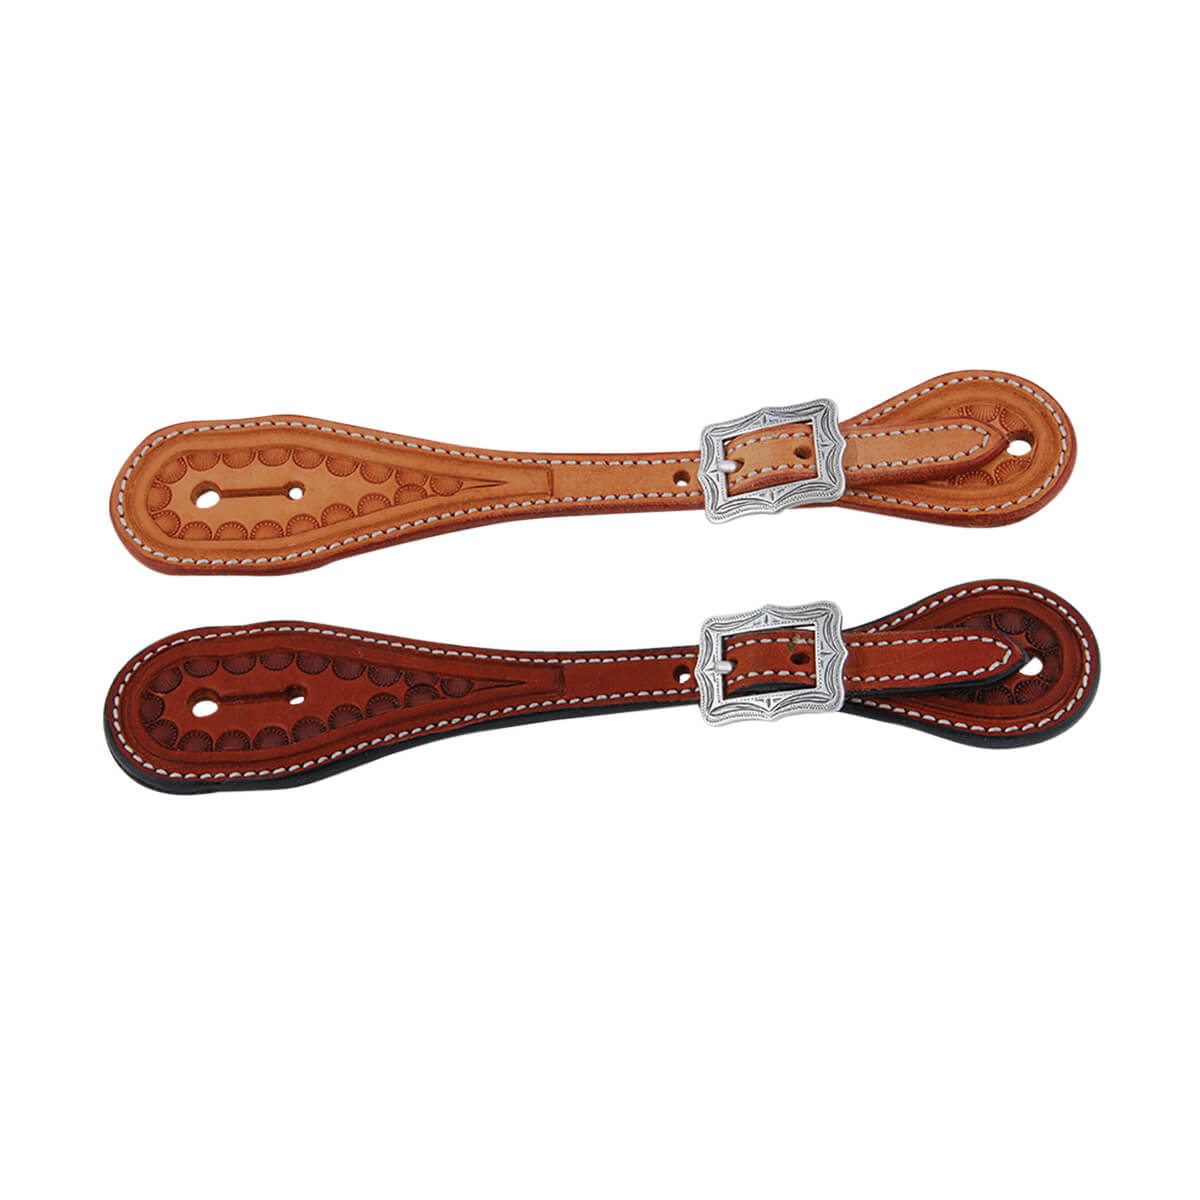 Straight Spur Strap with Border